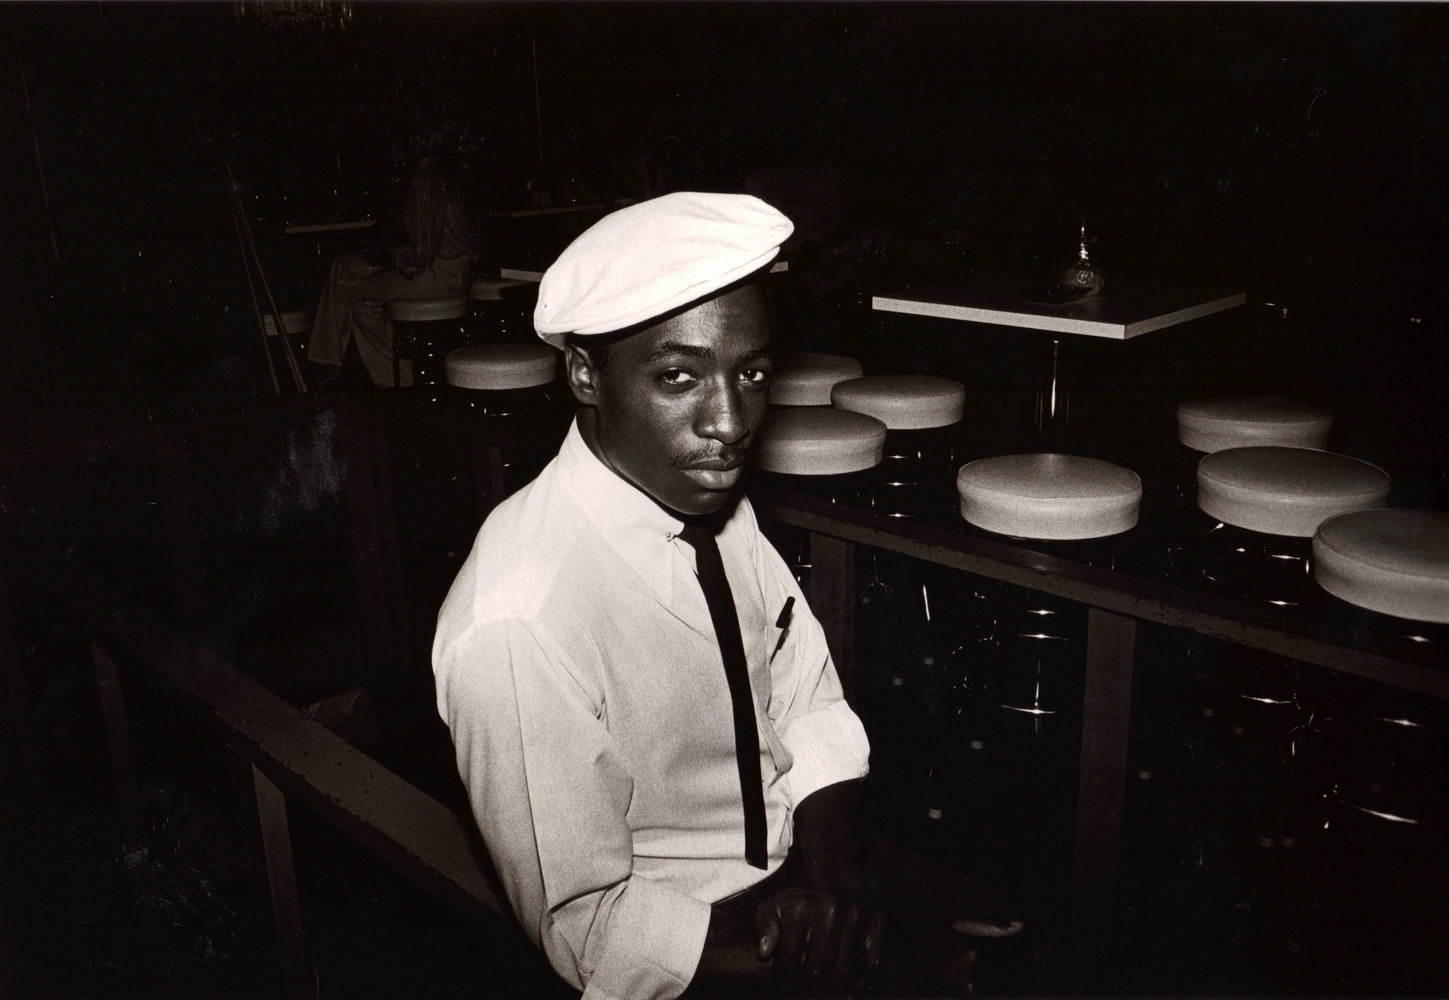 Waiter at Cisco's, Atlanta by Susan Raines